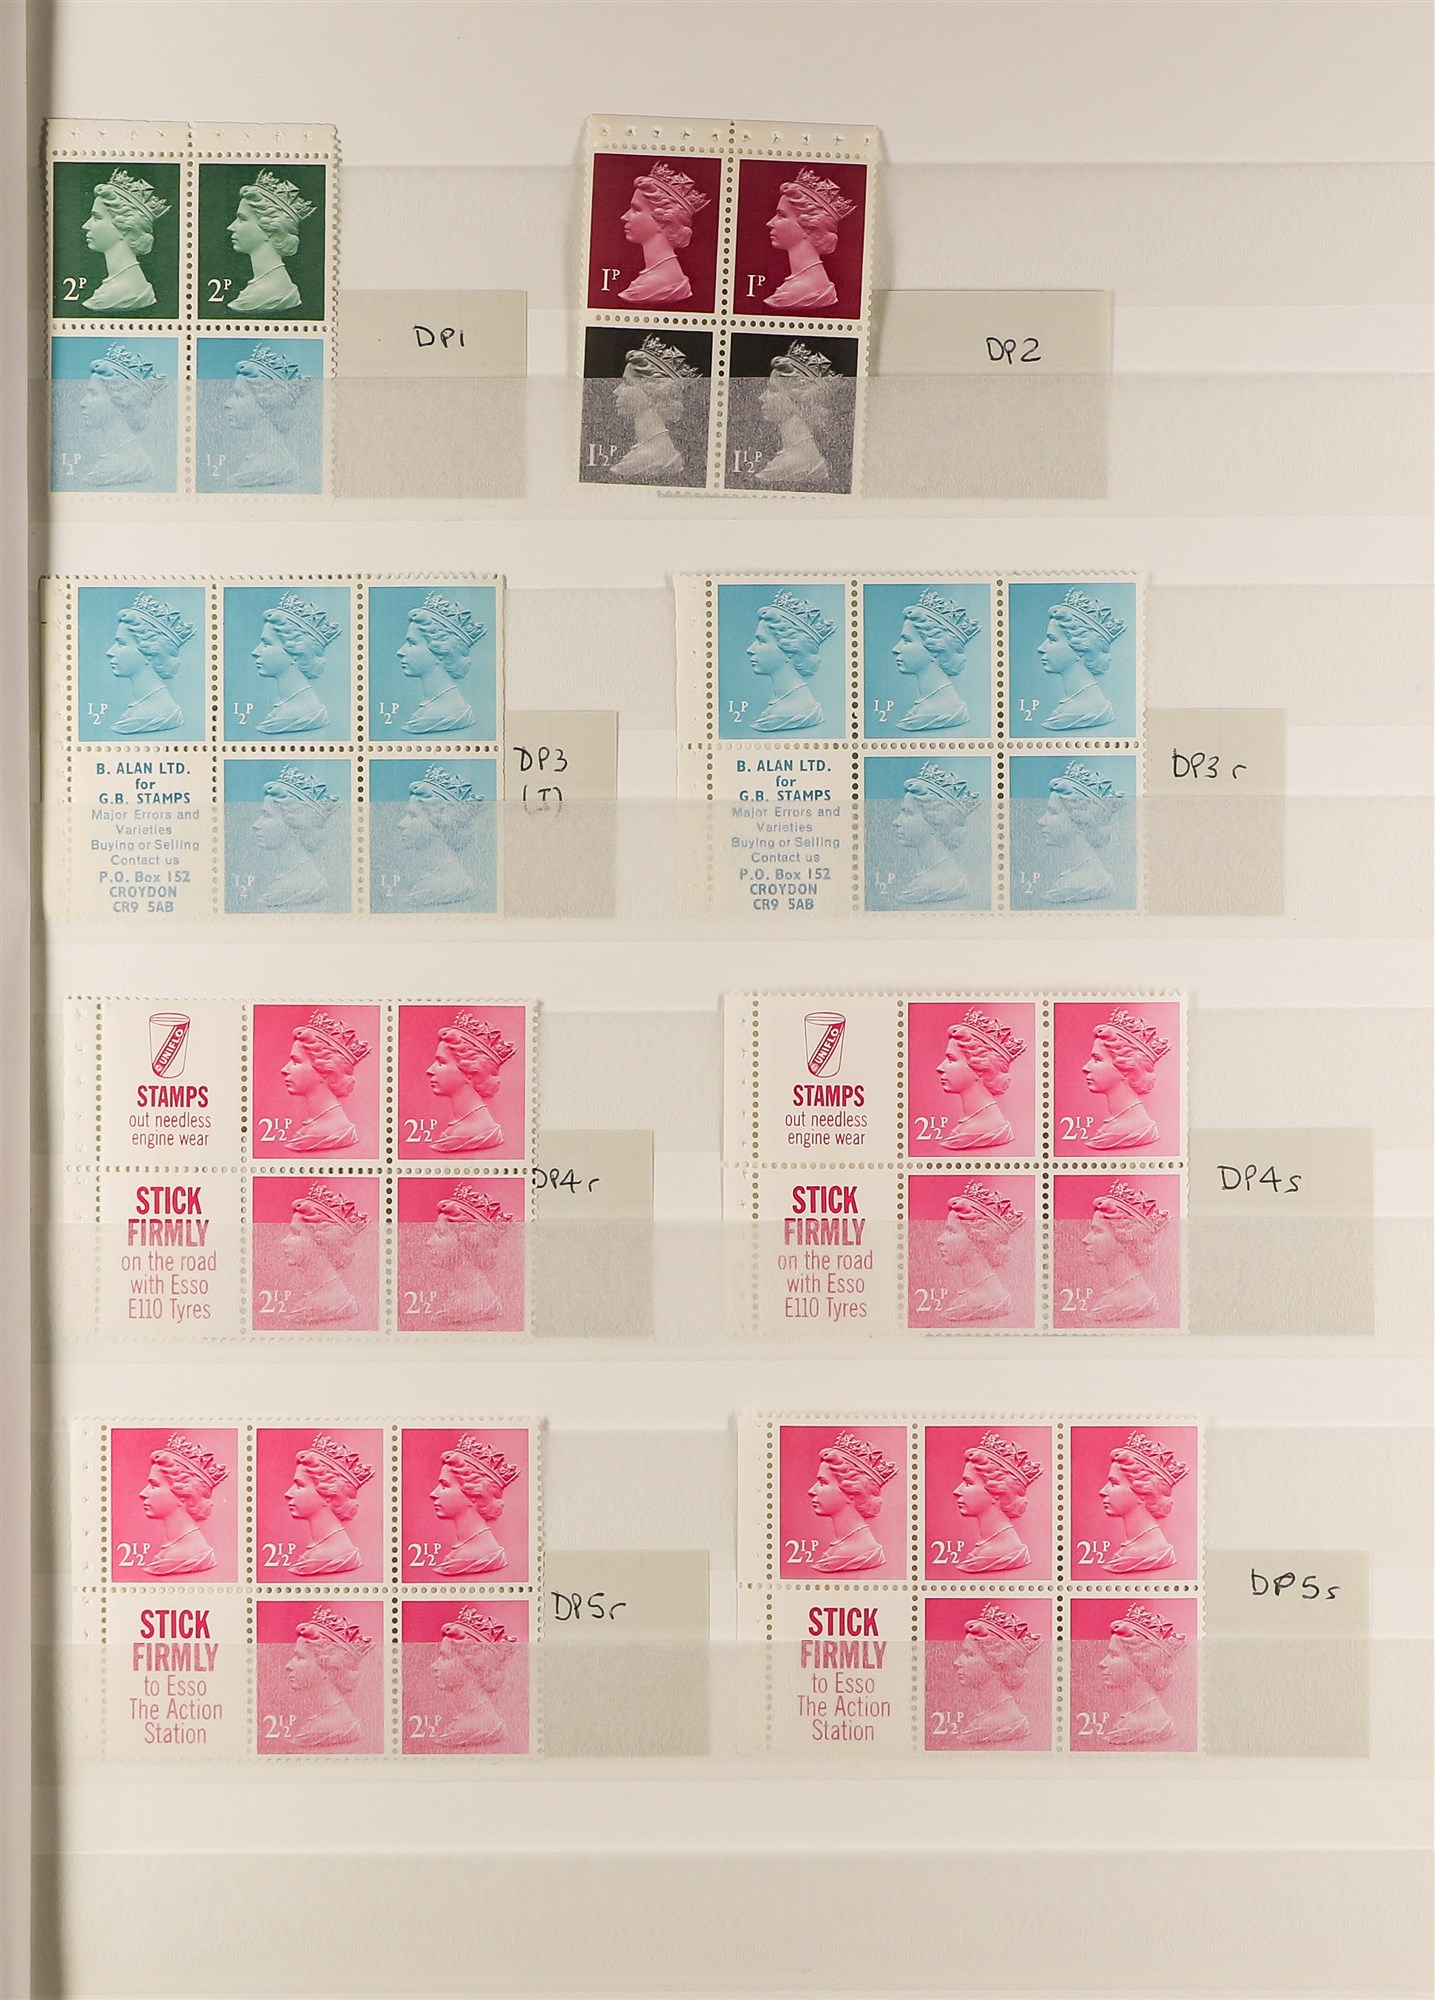 GB.ELIZABETH II MACHIN STITCHED BOOKLET PANES all different and with generally good perfs. (48